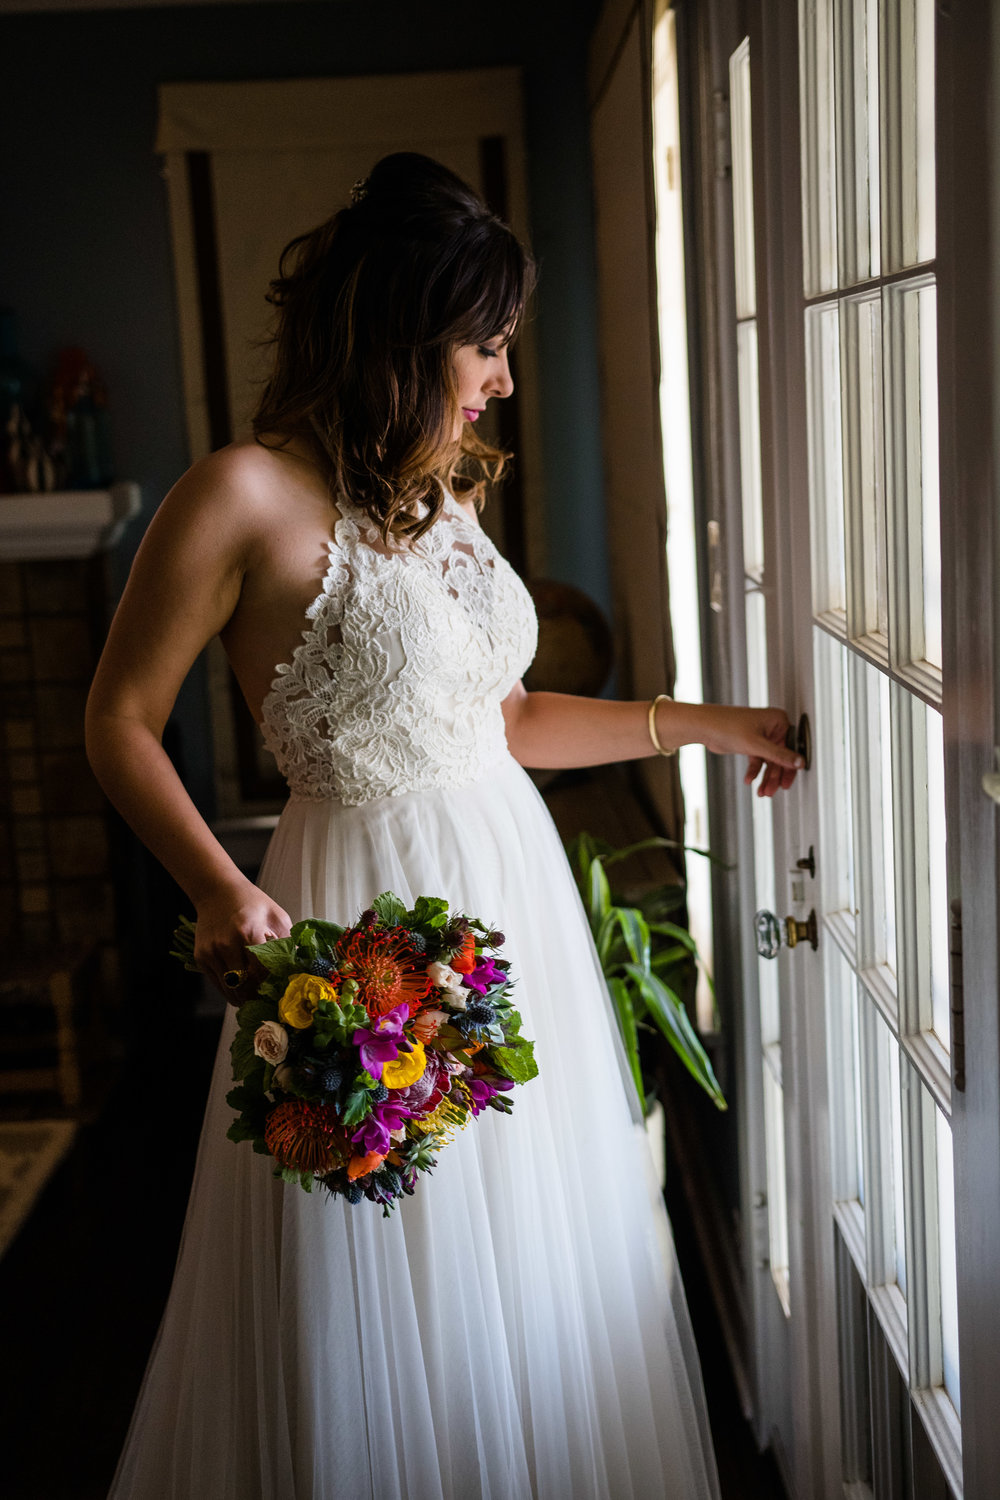 Vibrant Fiesta Backyard Wedding Reception bride getting ready to make her entrance.jpg